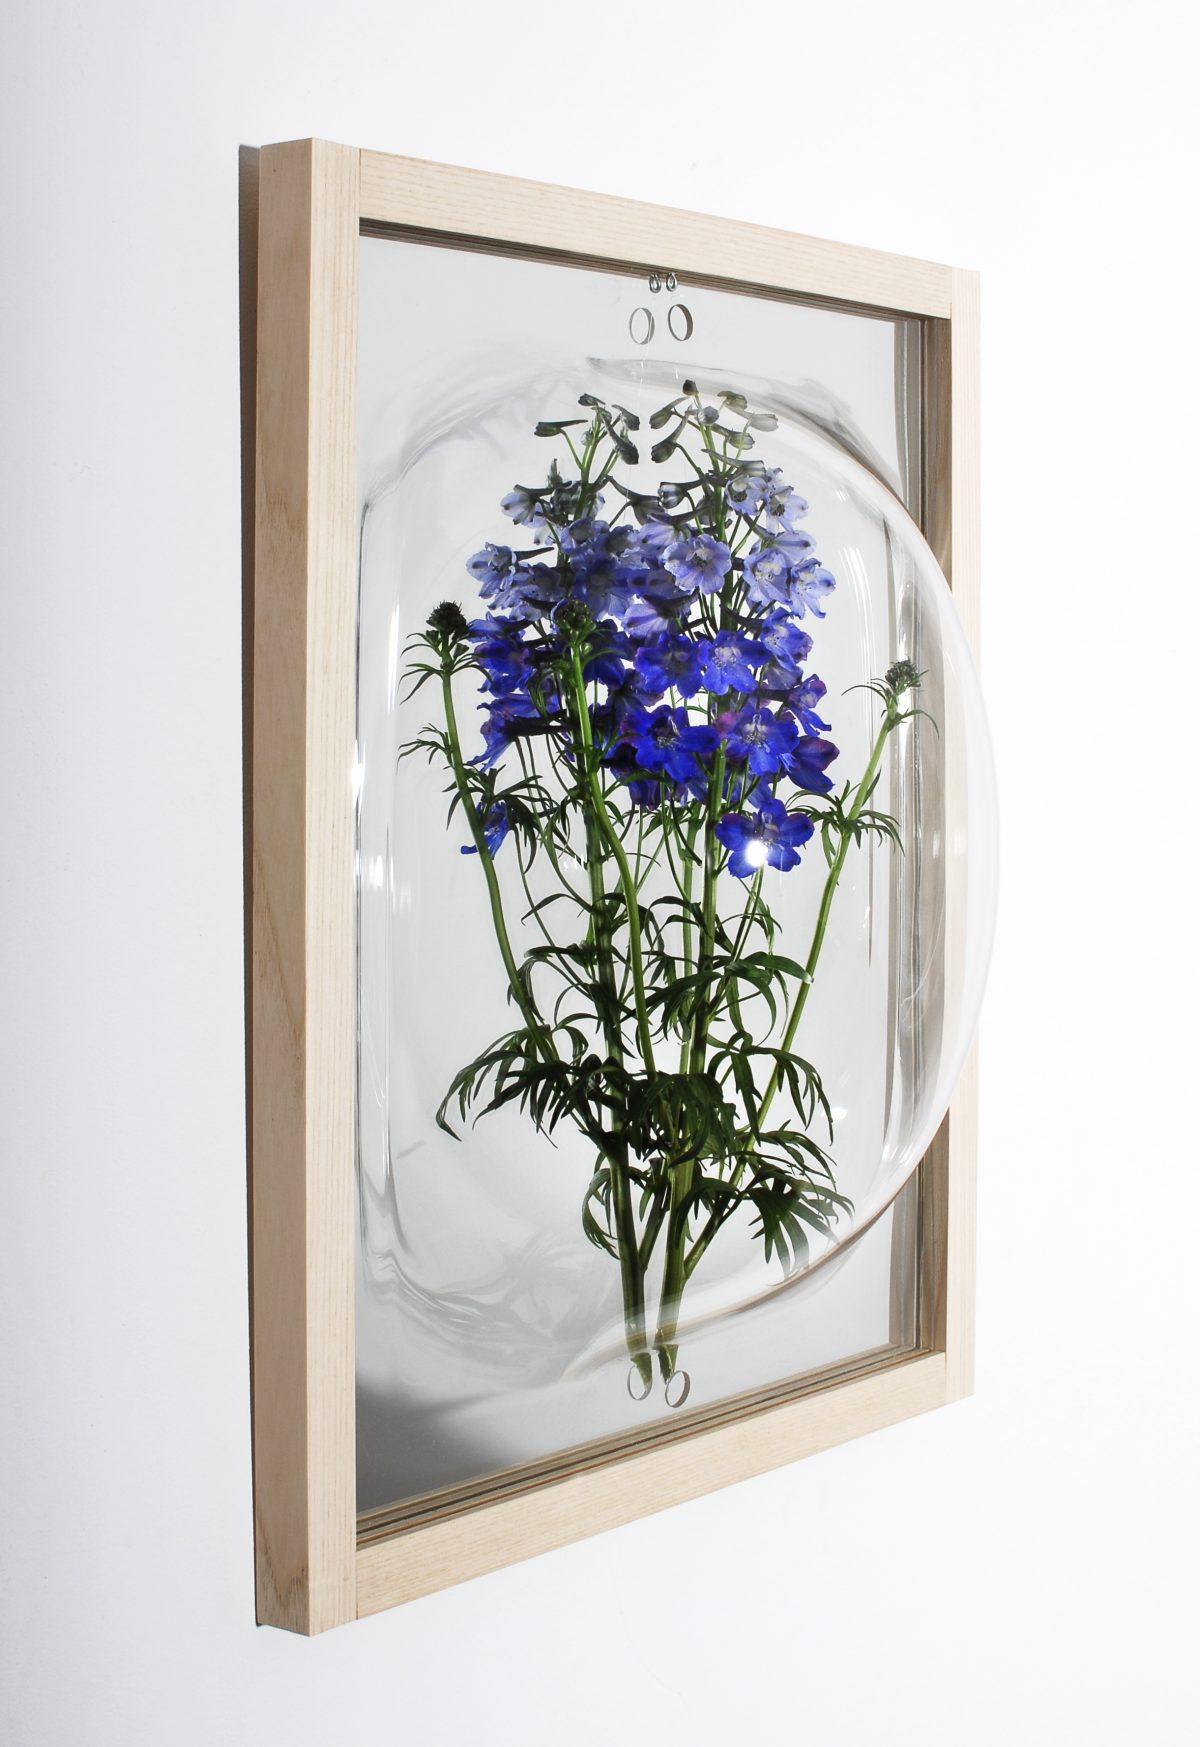 Curator Cabinet Showcase Mirror Blue Flower Studio Thier VanDaalen Gimmii Shop Dutch Design